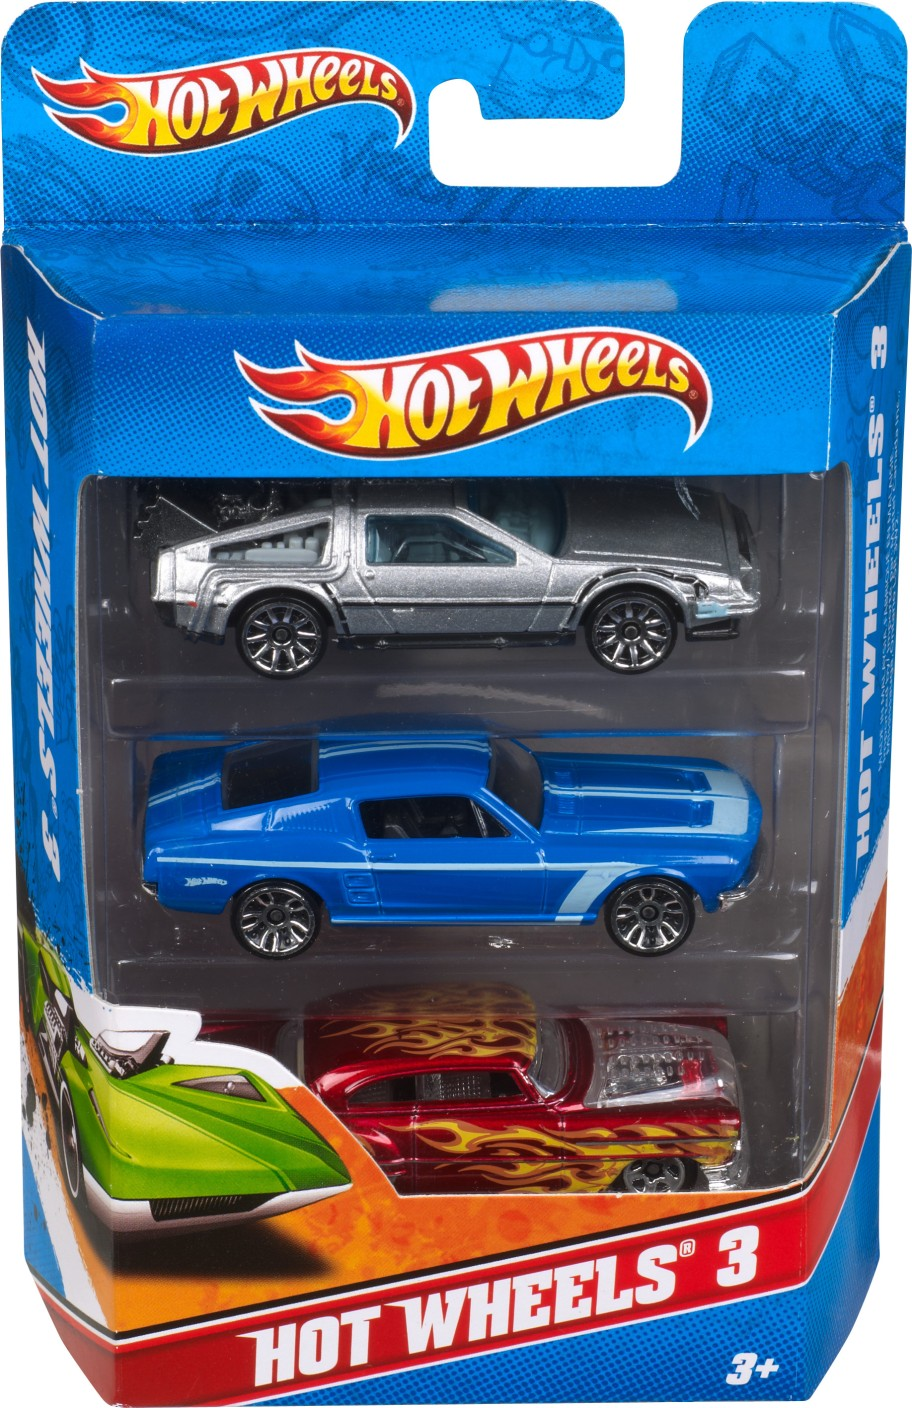 hot wheels 3 car pack on offer